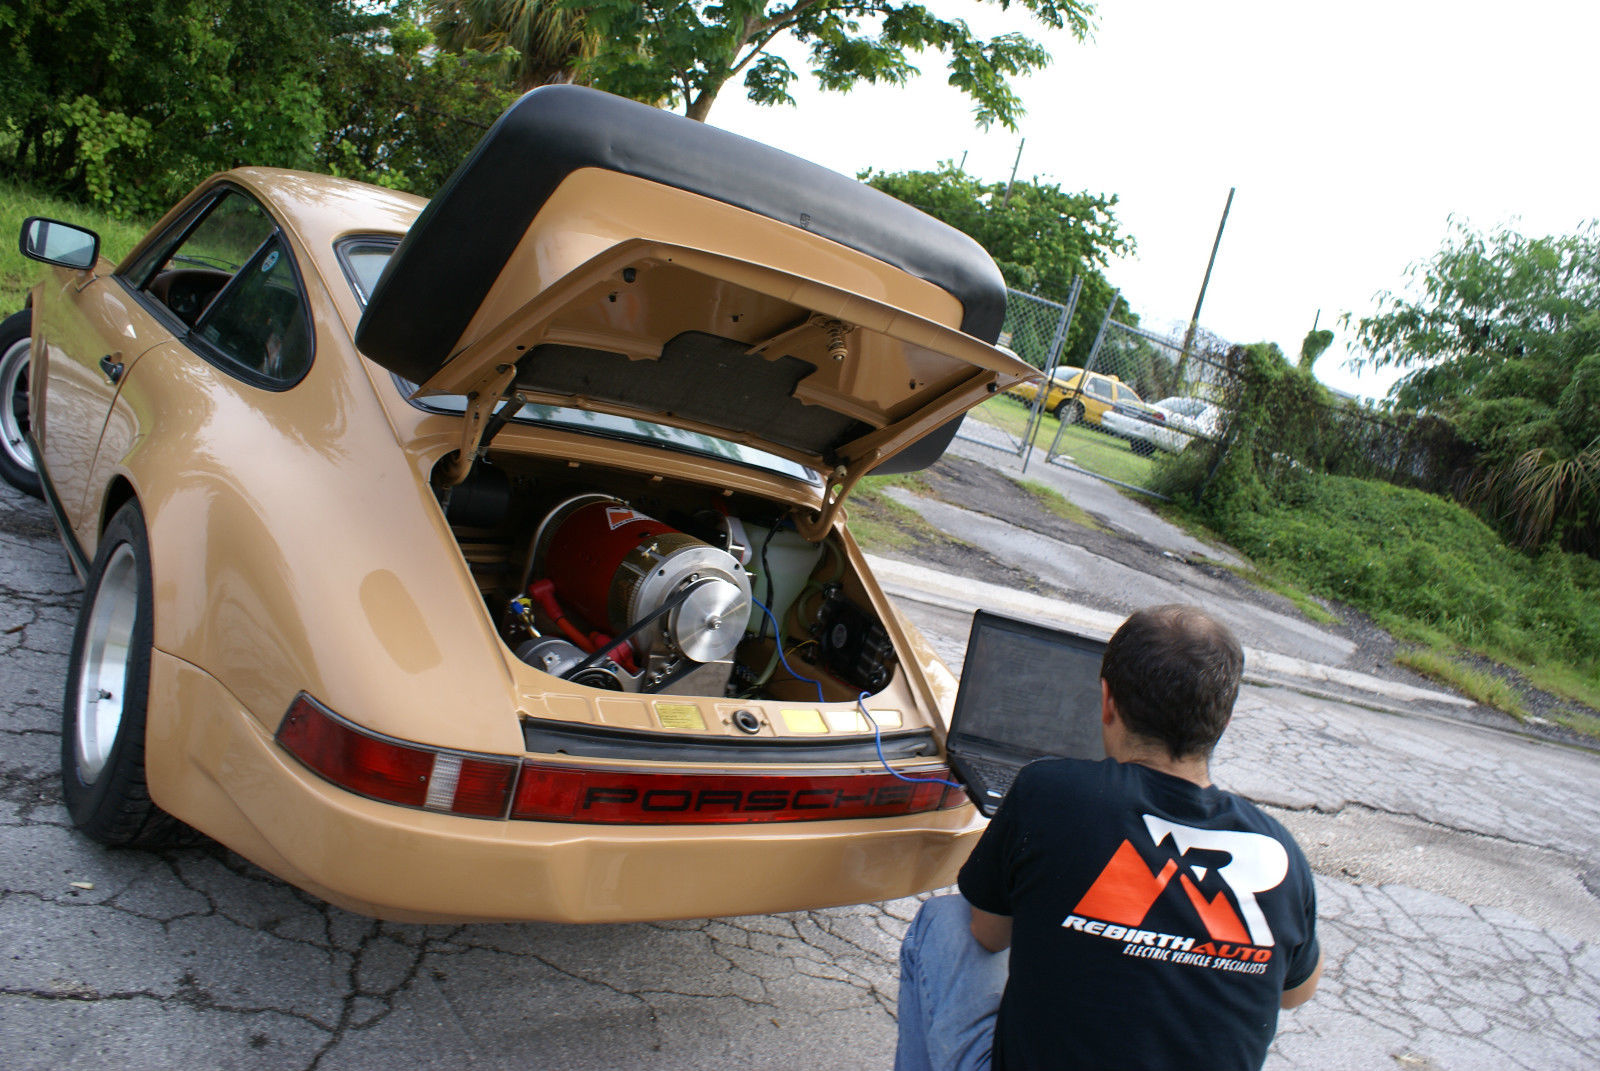 This 911 Has Had Its Aircooled Flat 6 Replaced With A Set Of Two Netgain Warp9 Electric Dc Motors Controlled By Evnetics Soliton1 Controller Capable